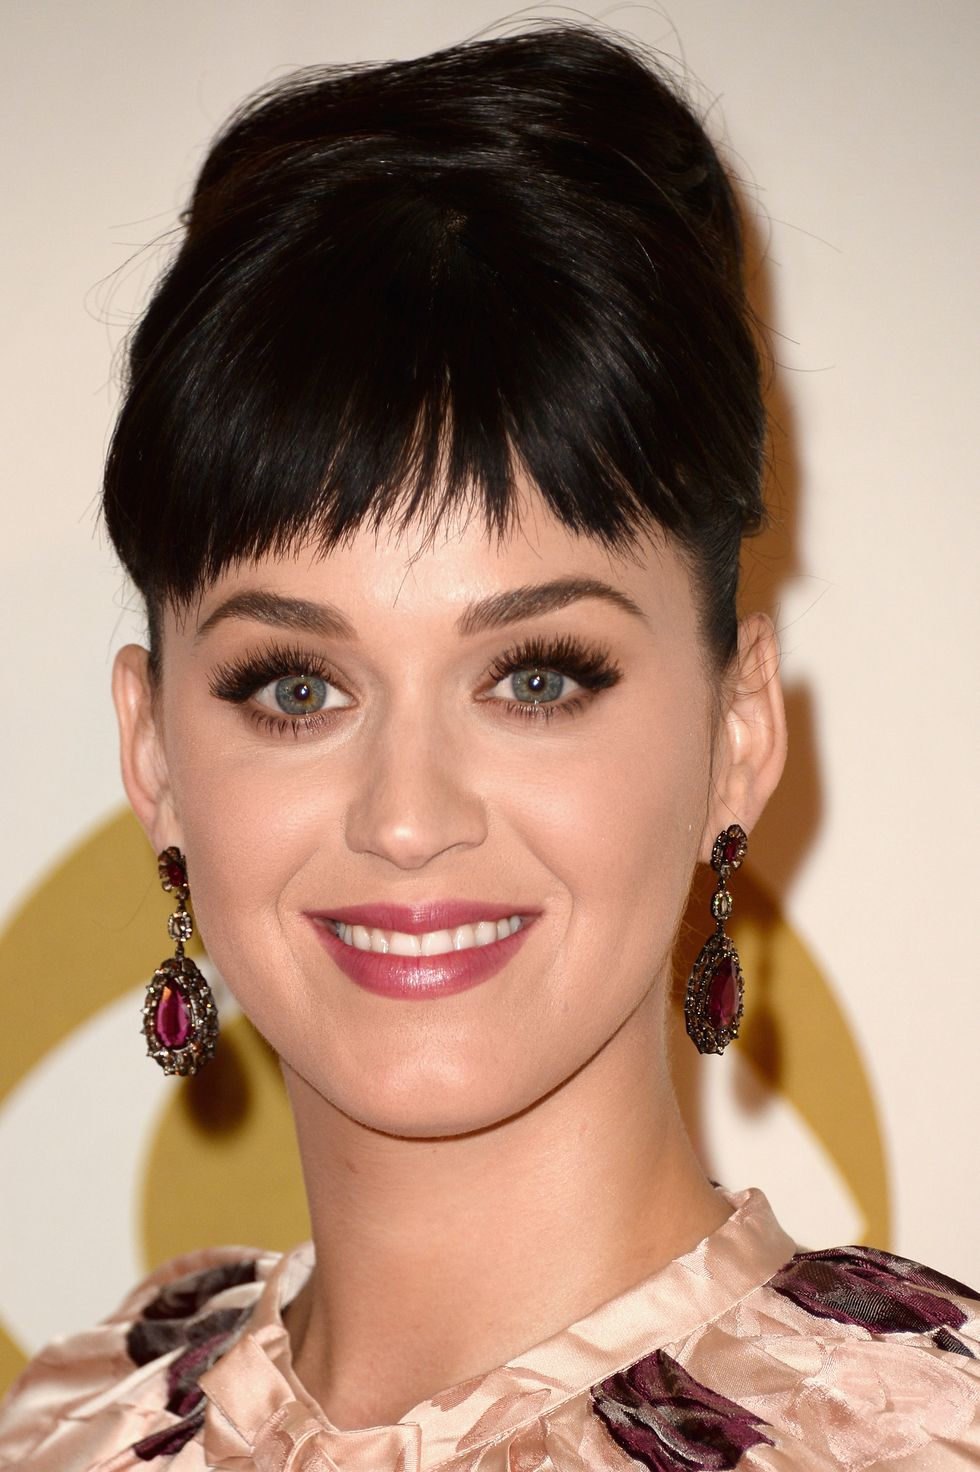 Cutting-bangs-Short-and-Sparse-Bangs-1 Hairstyles with bangs: How to cut bangs as a professional?